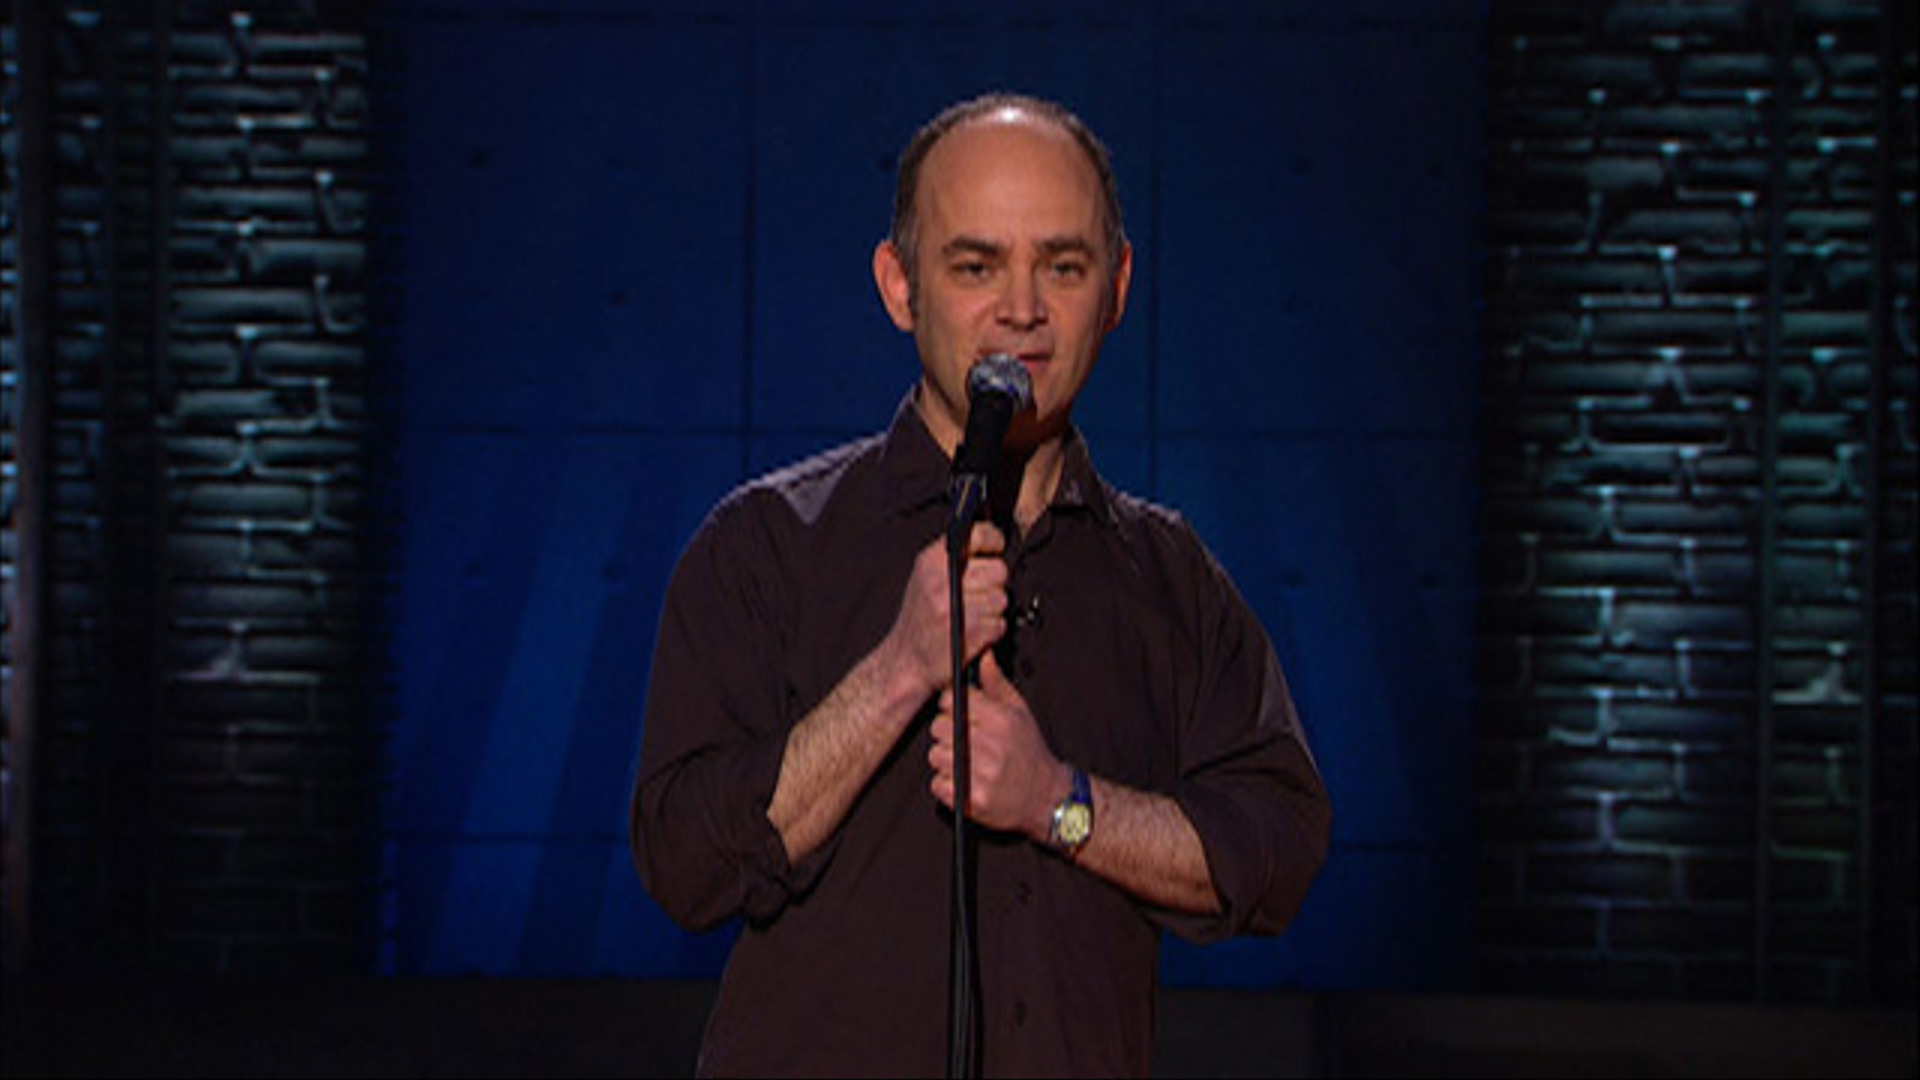 Todd Barry - Fake Follow-Up Question